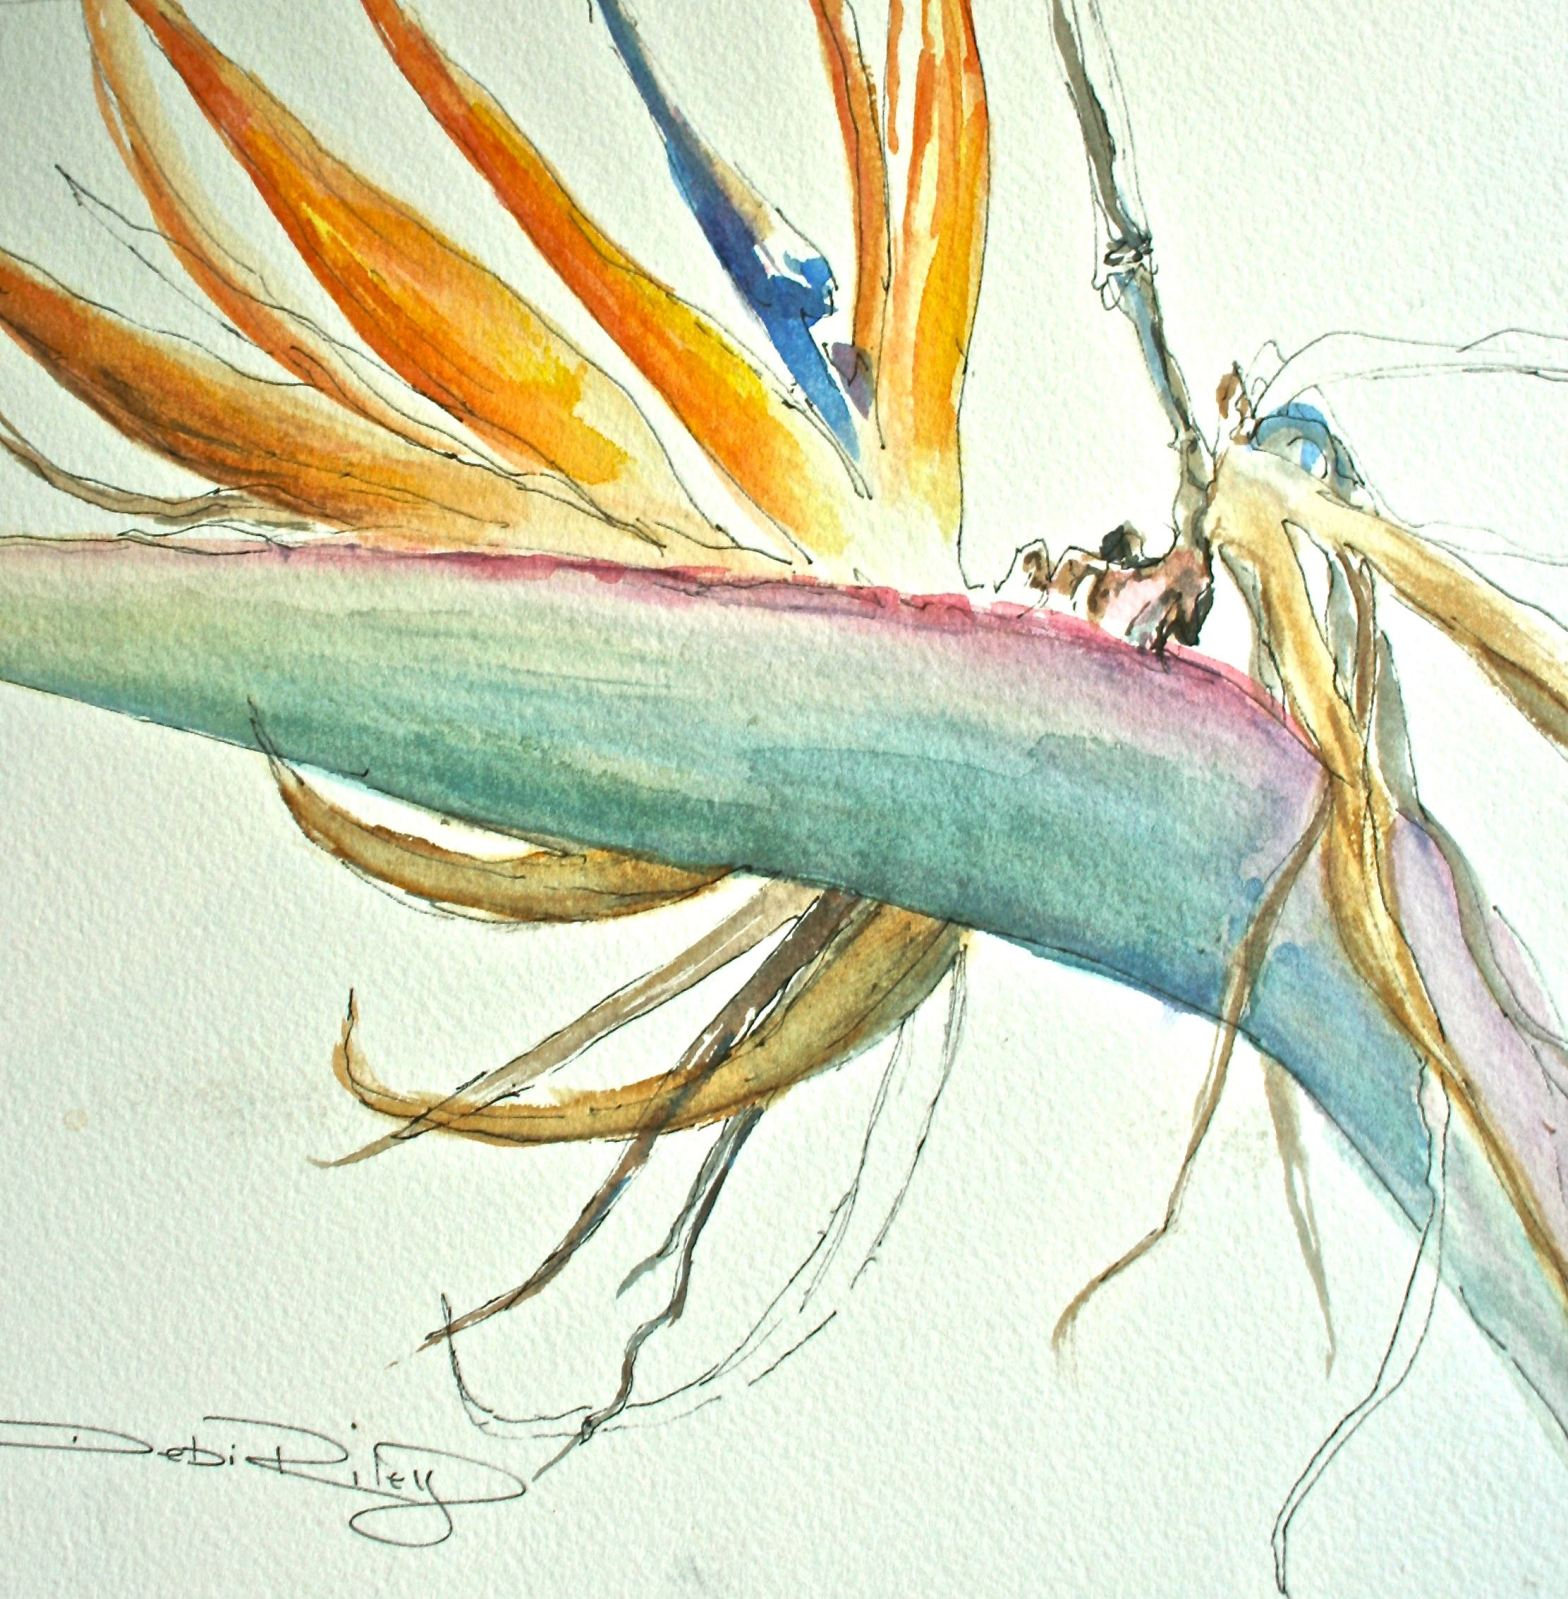 bird of paradise debiriley.com